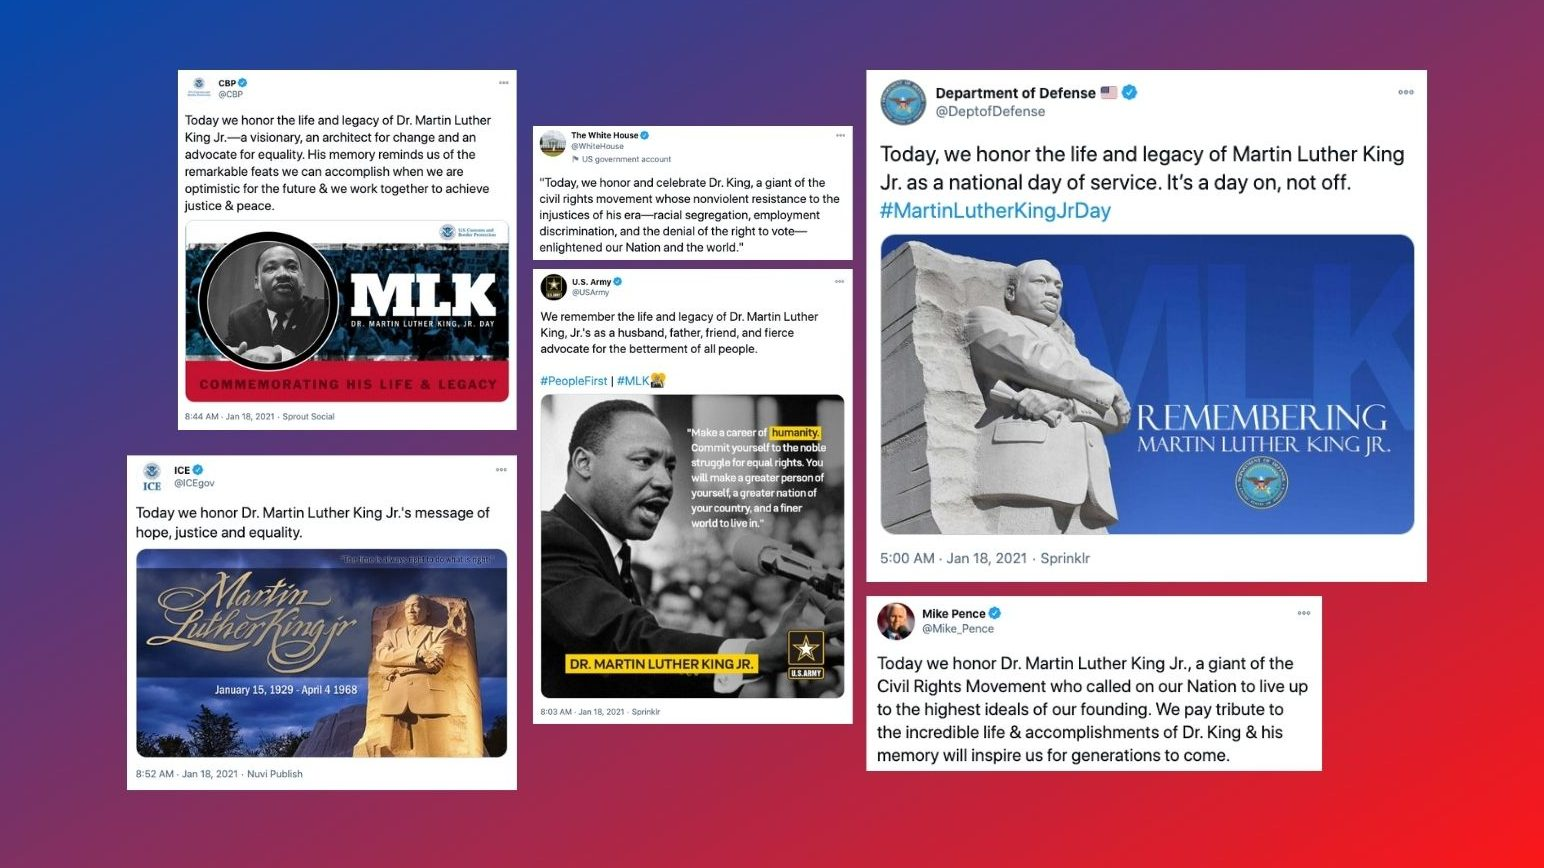 Martin Luther King Jr Day tweets by government accounts including the U.S. Army, ICE and the Department of Defense